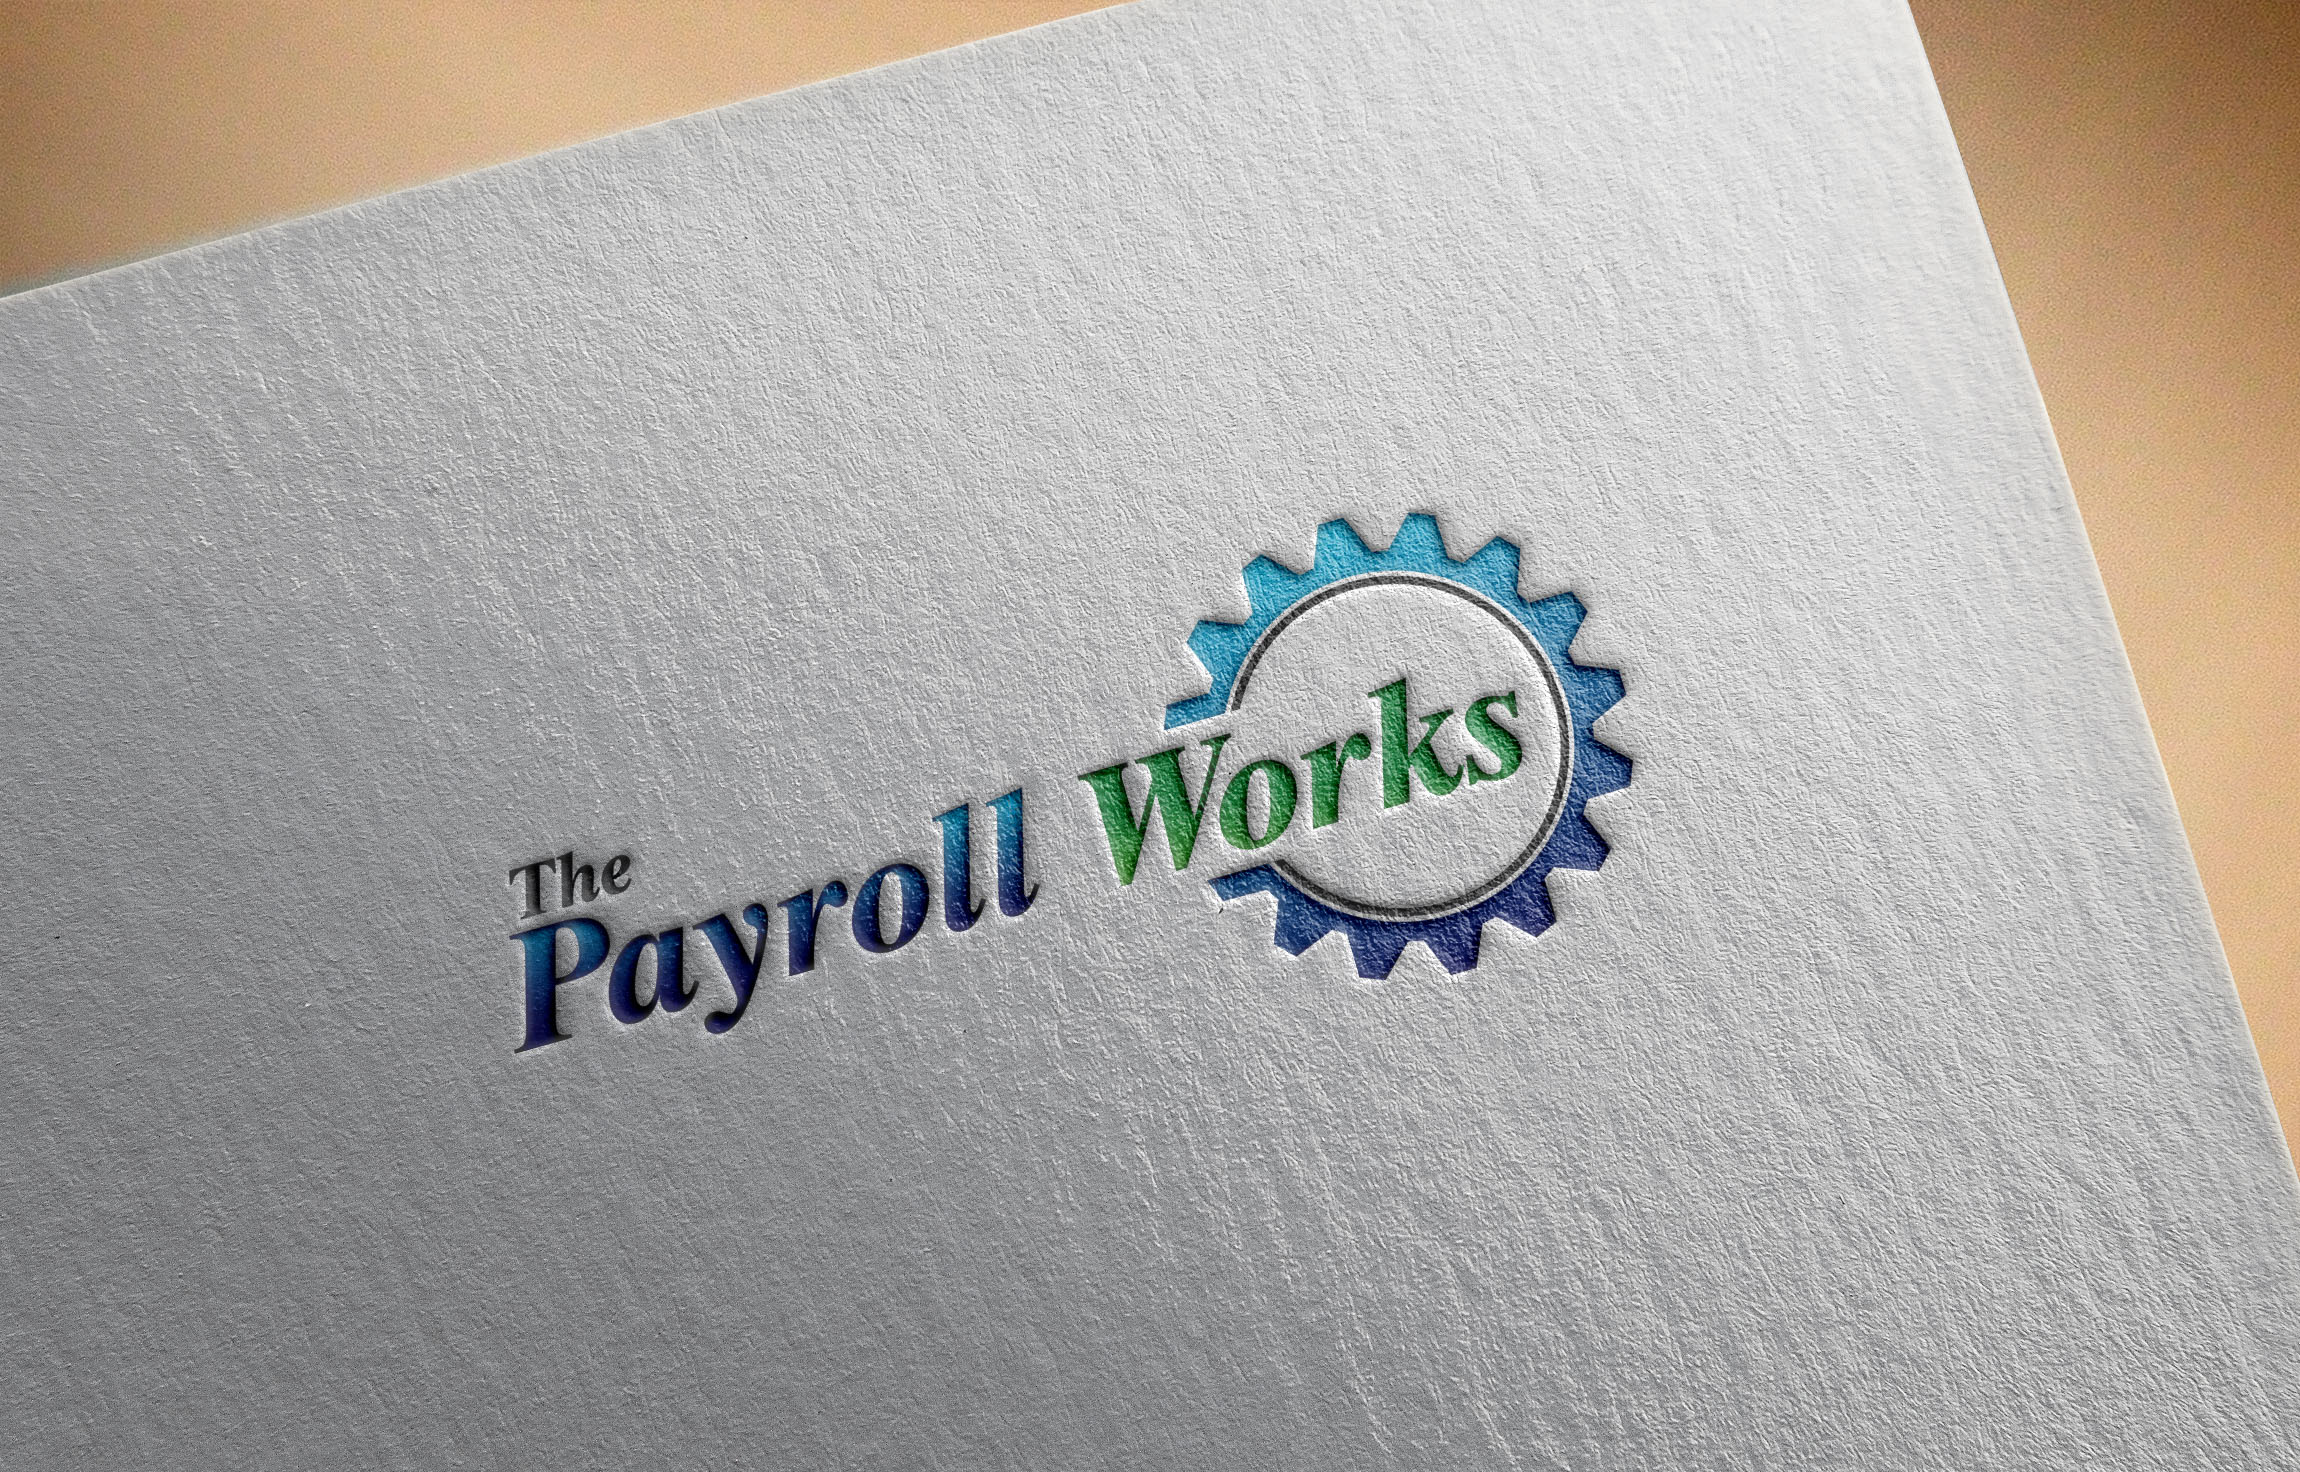 Logo Design by Raymond Garcia - Entry No. 55 in the Logo Design Contest Captivating Logo Design for The Payroll Works.